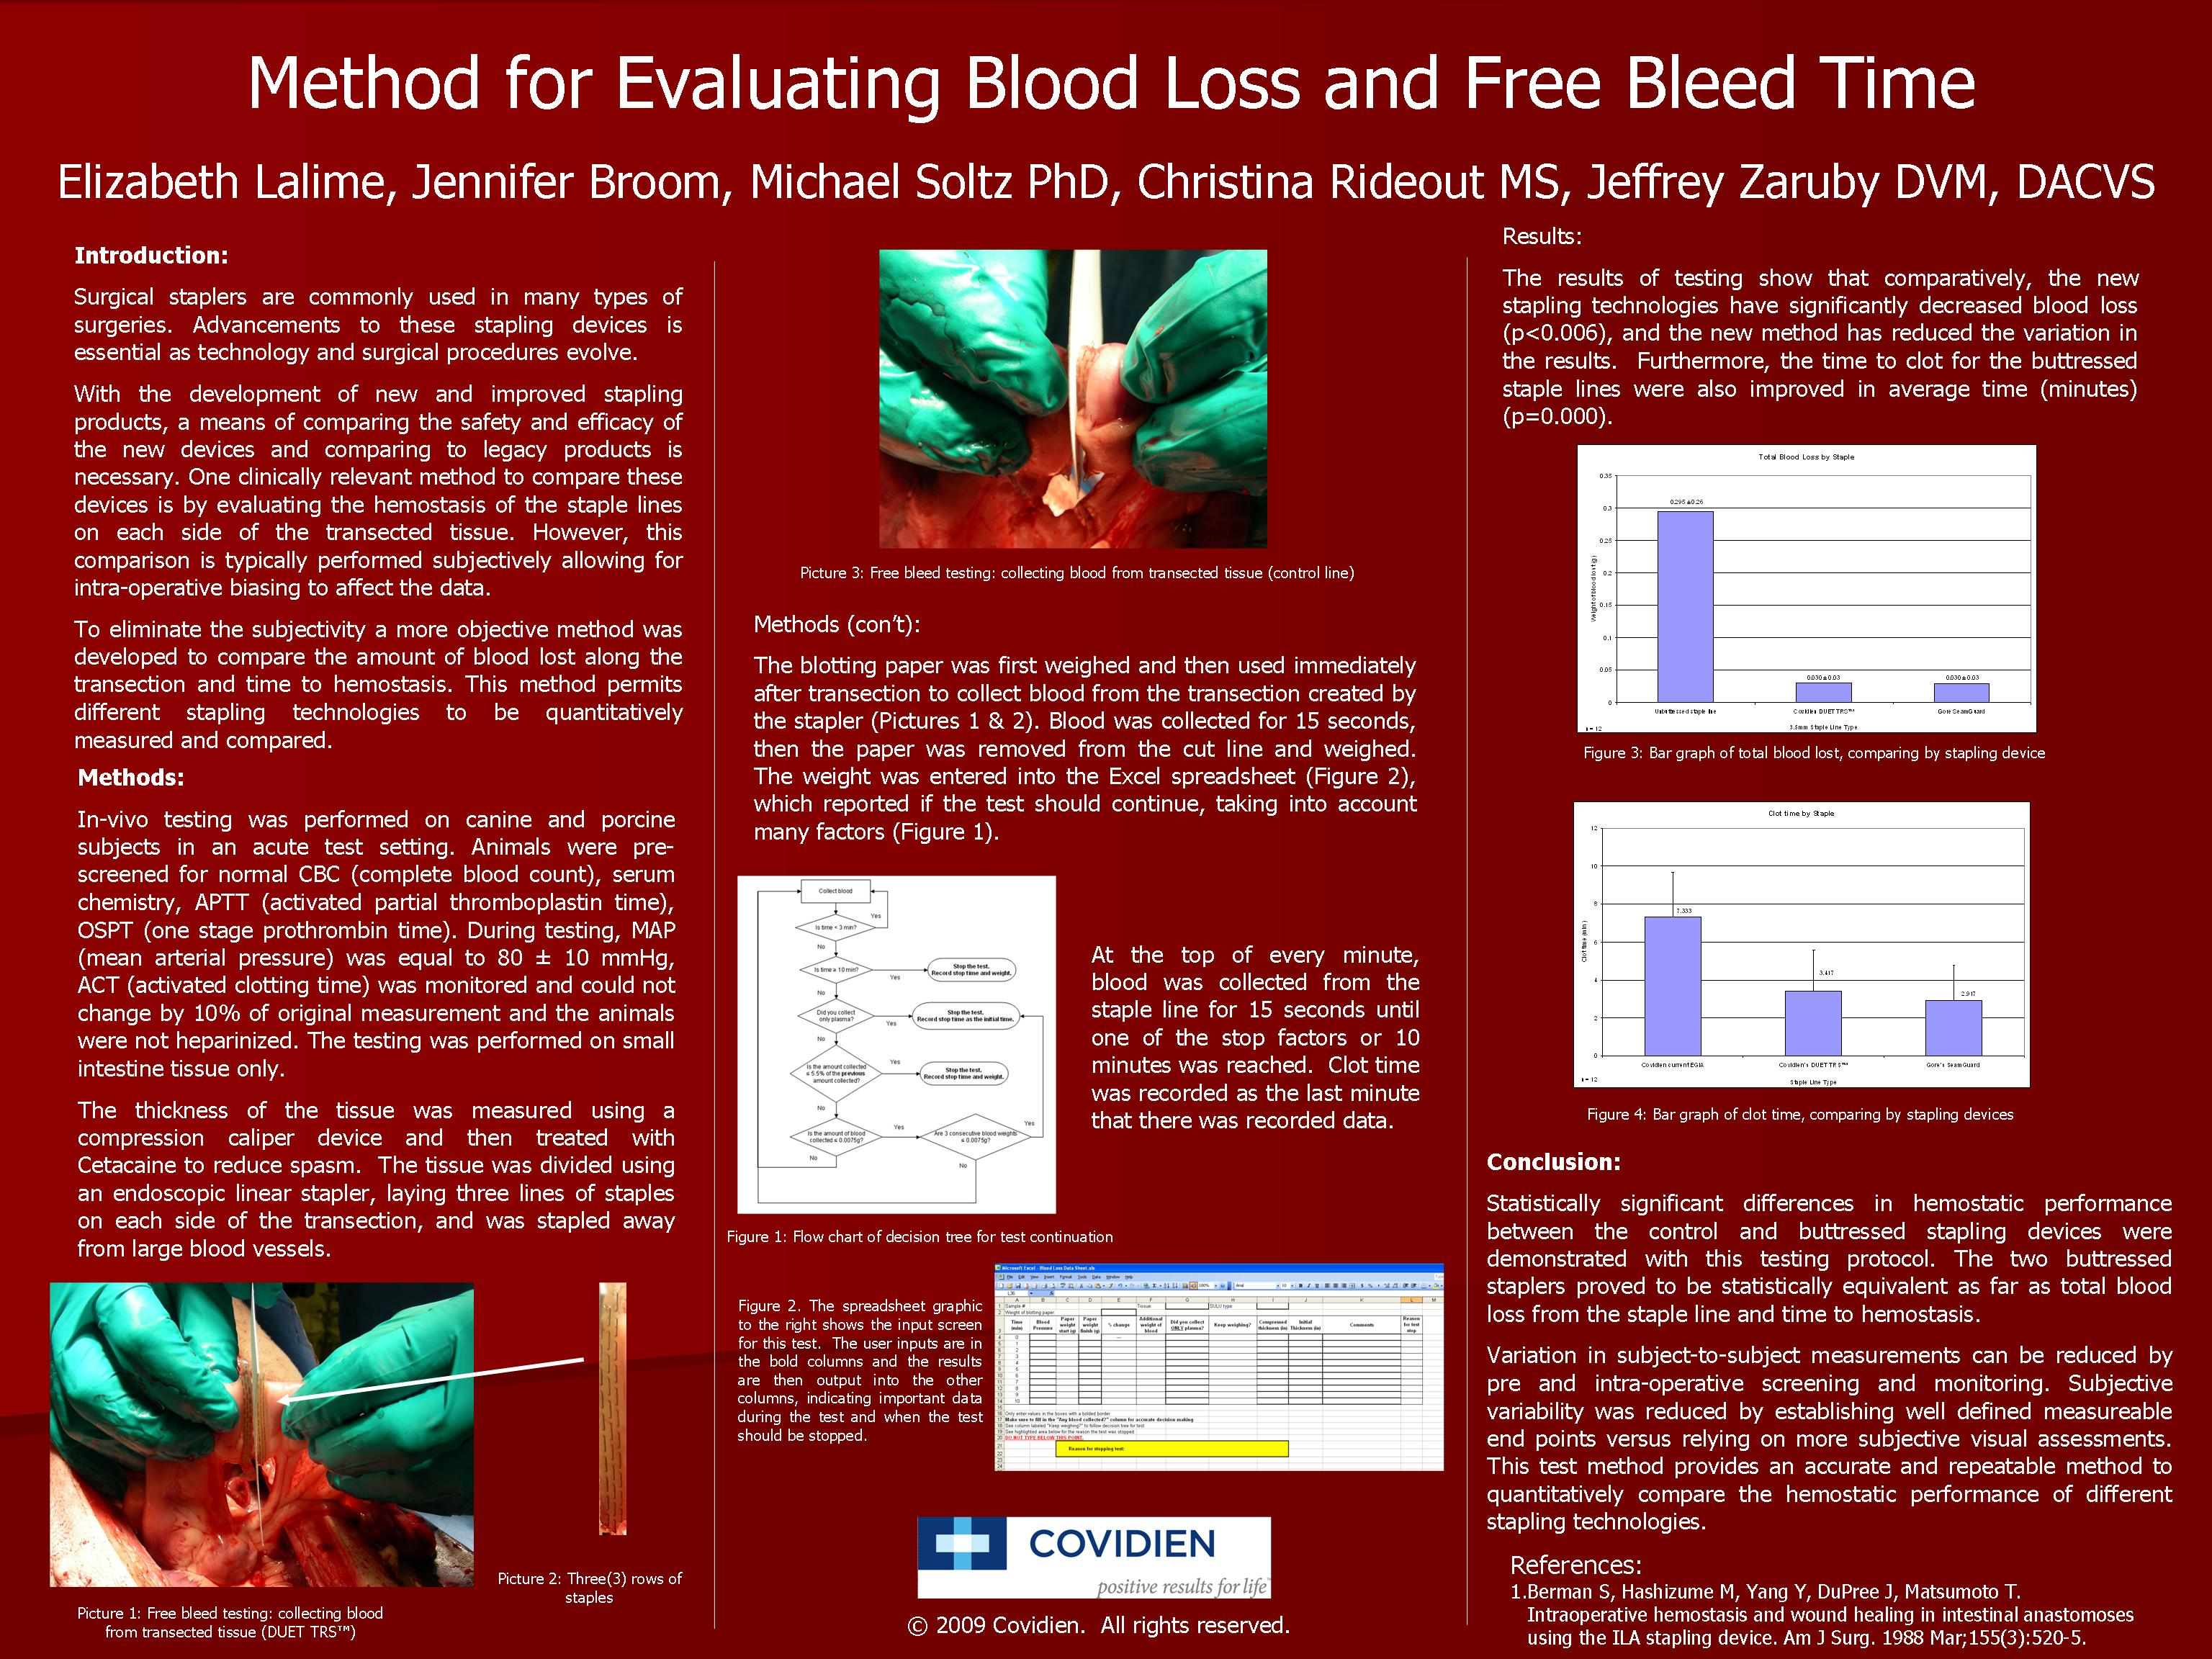 Test Method for Evaluation of Blood Loss and Free Bleed Time